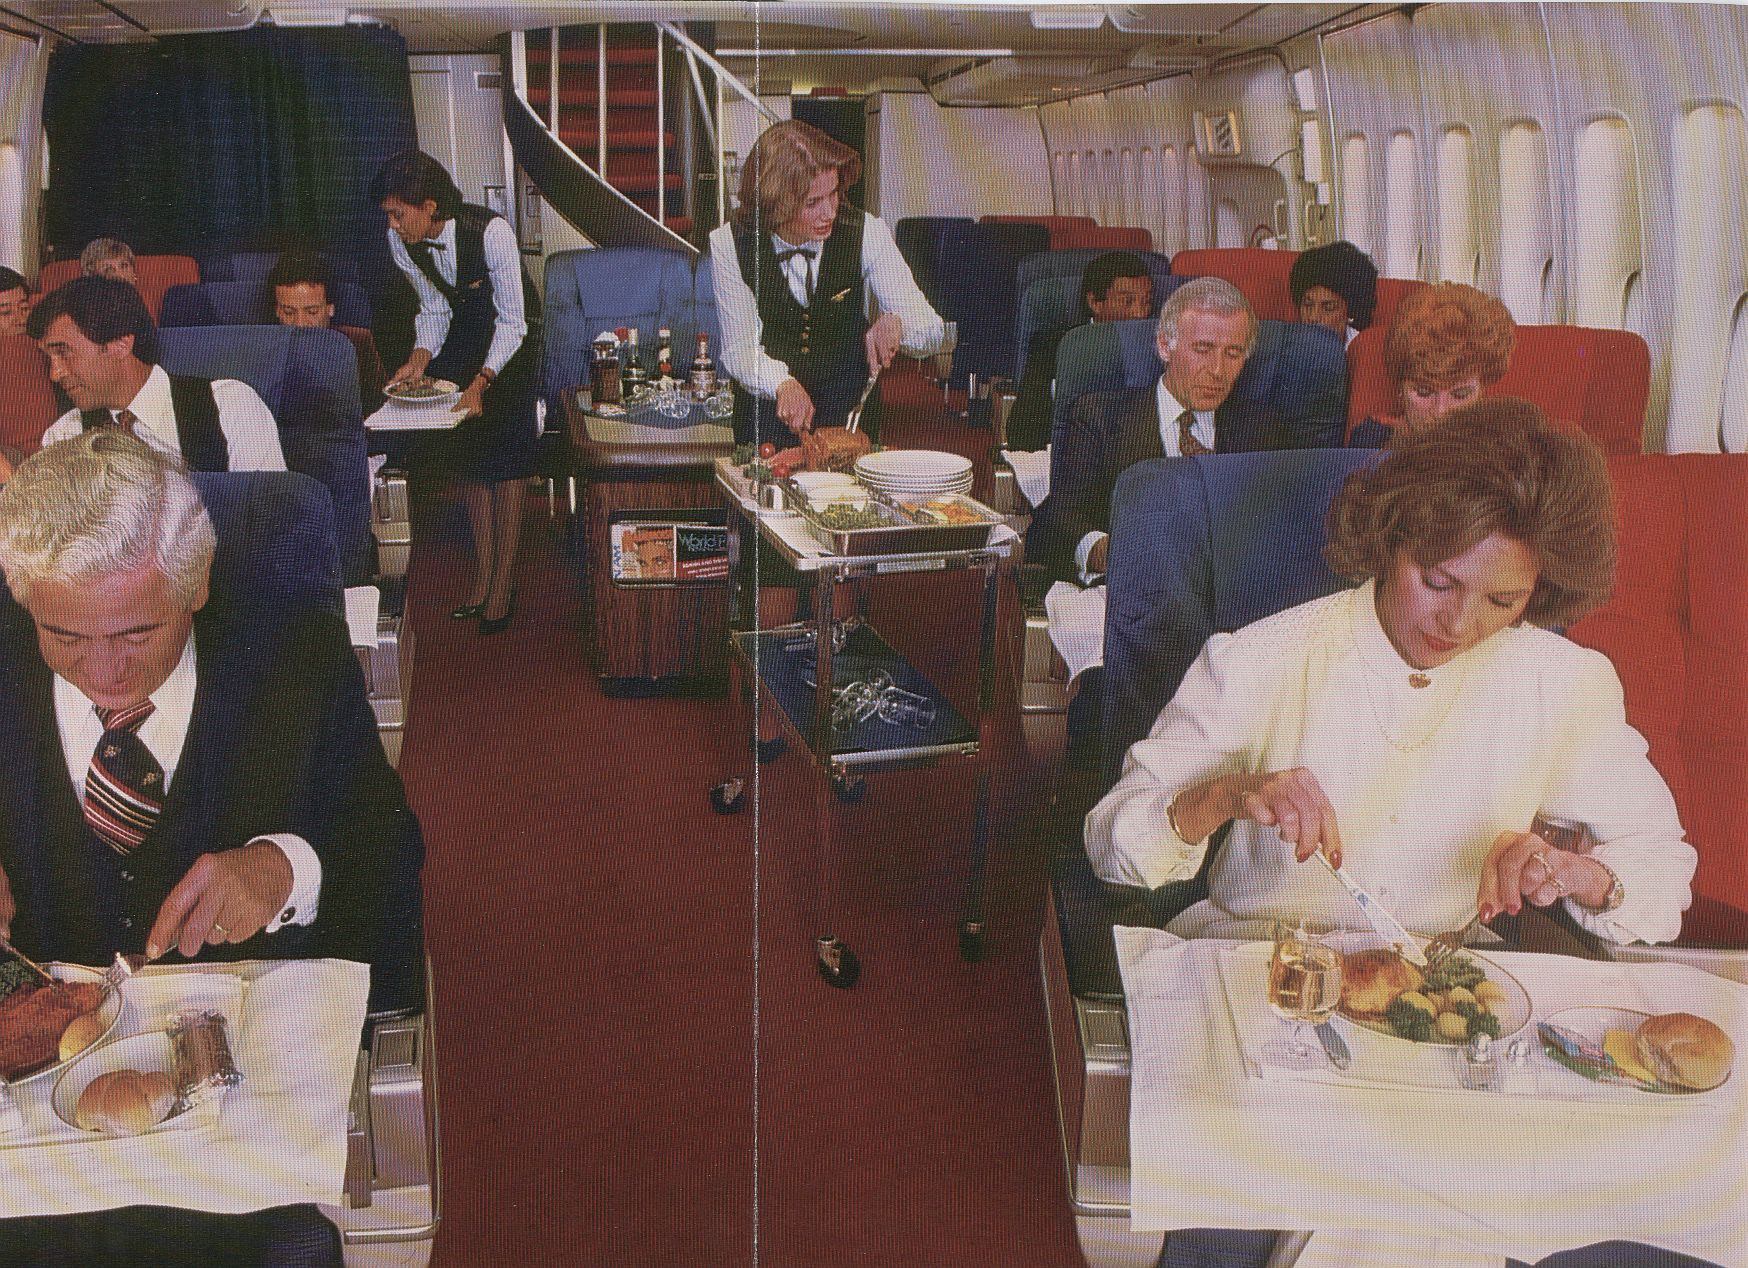 1983 A Boeing 747 First Class cabin during an elaborate meal service that included a roast cart at the customer's seat.